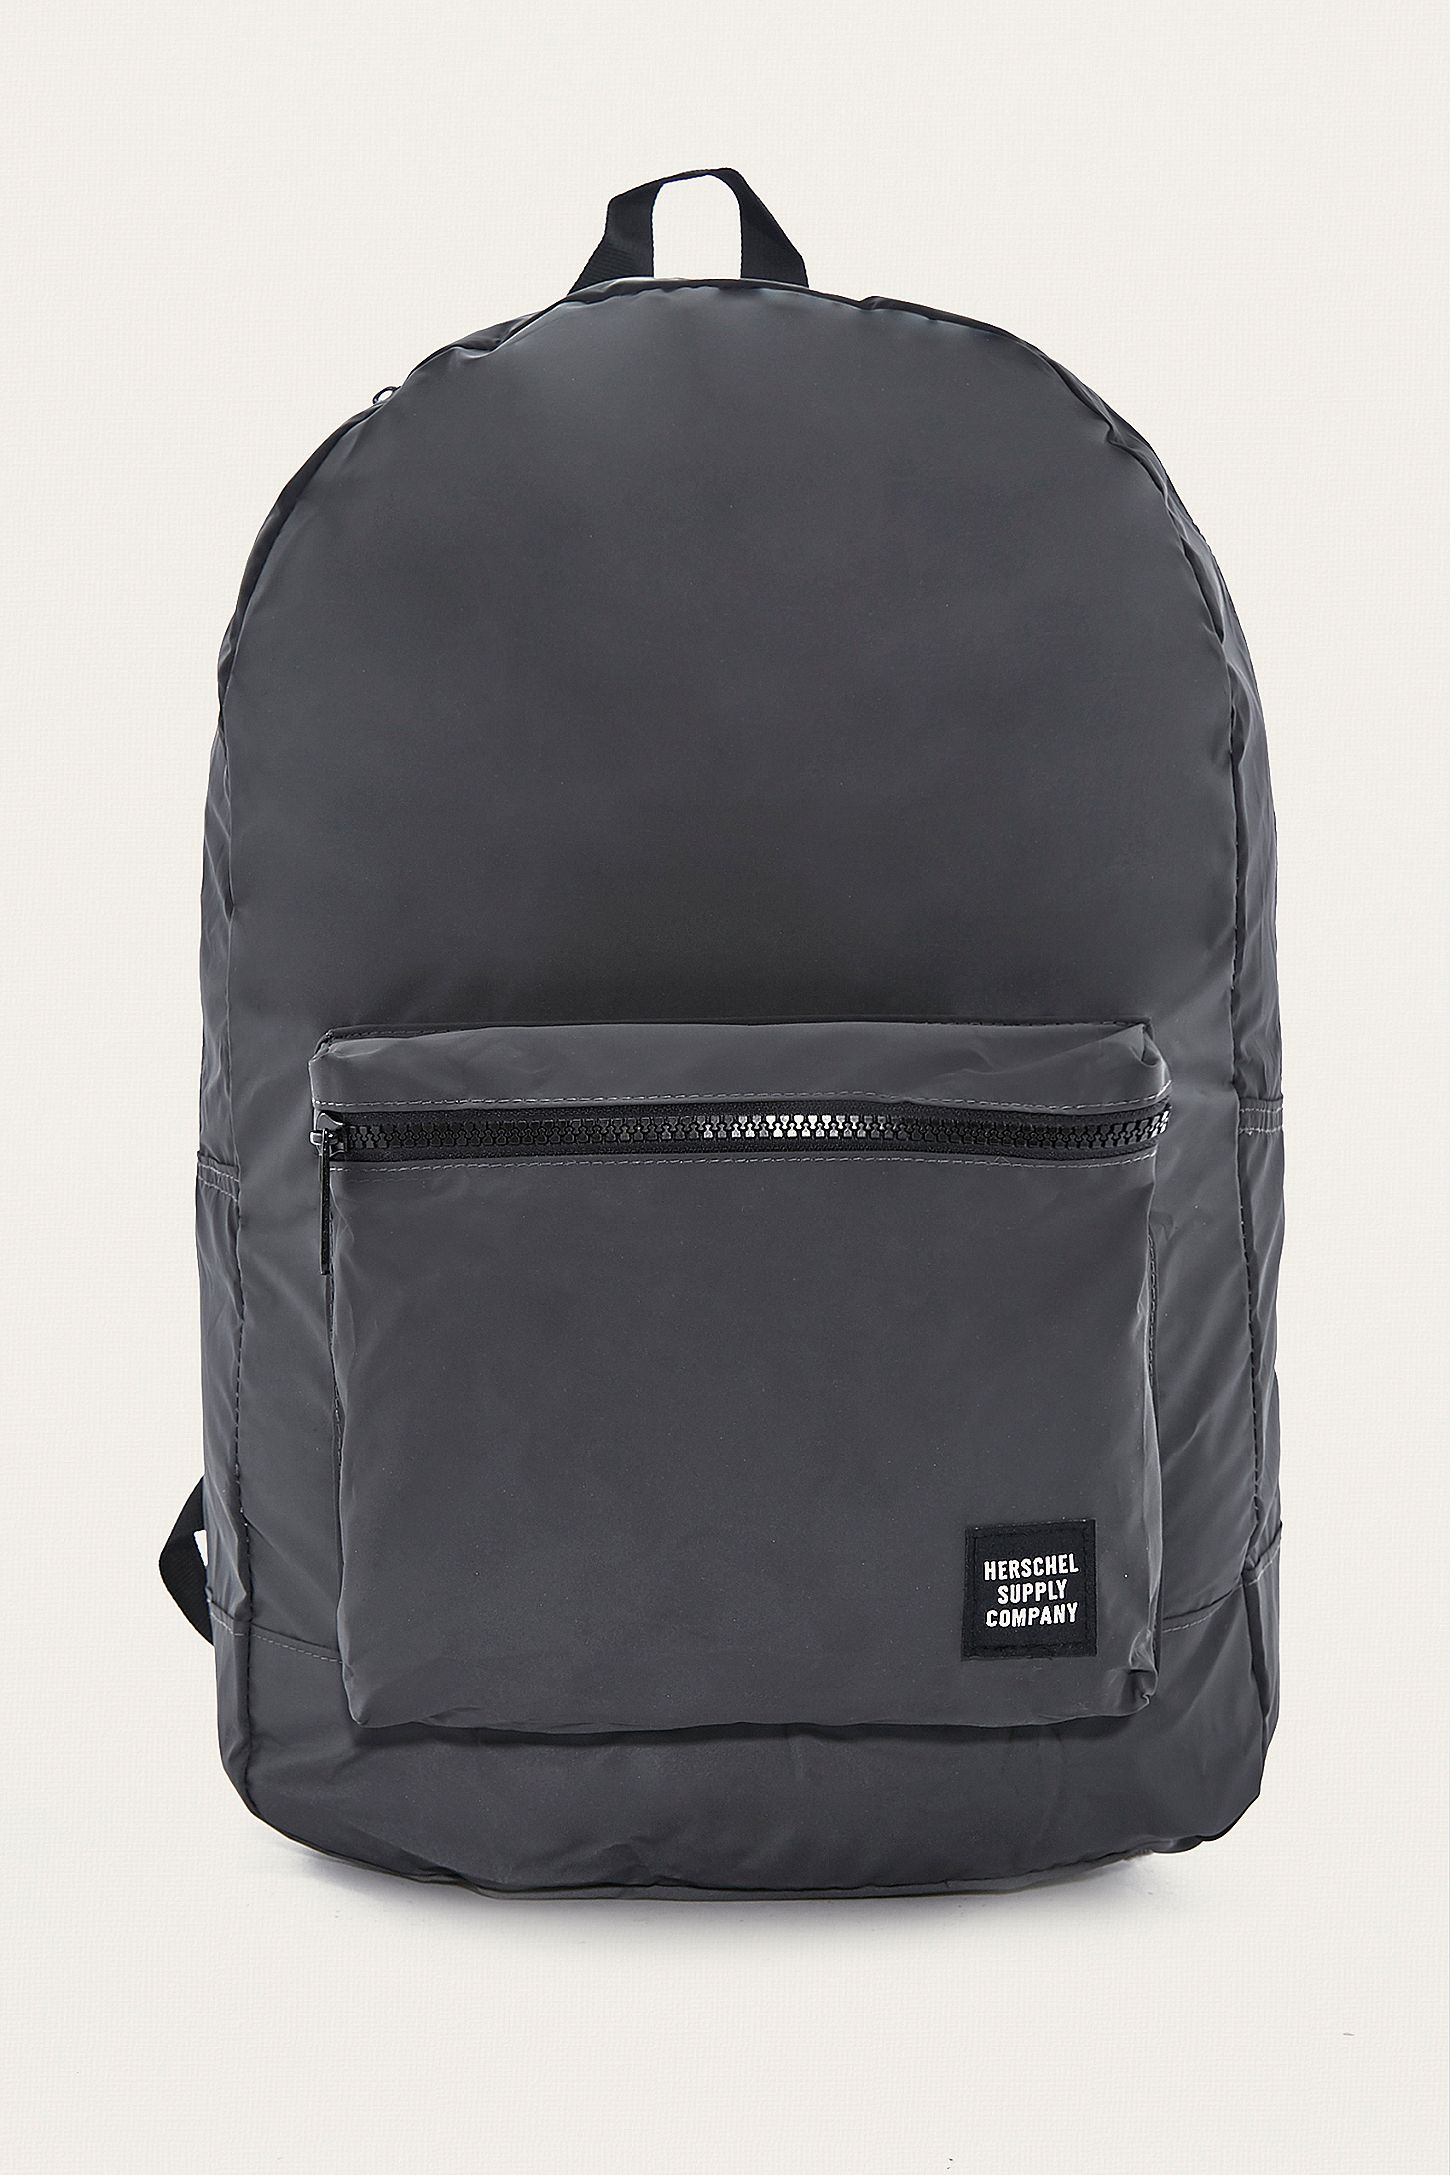 fb1b5d7d489 Herschel Supply Co. Reflective Black Packable Daypack Backpack. Click on  image to zoom. Hover to zoom. Double Tap to Zoom